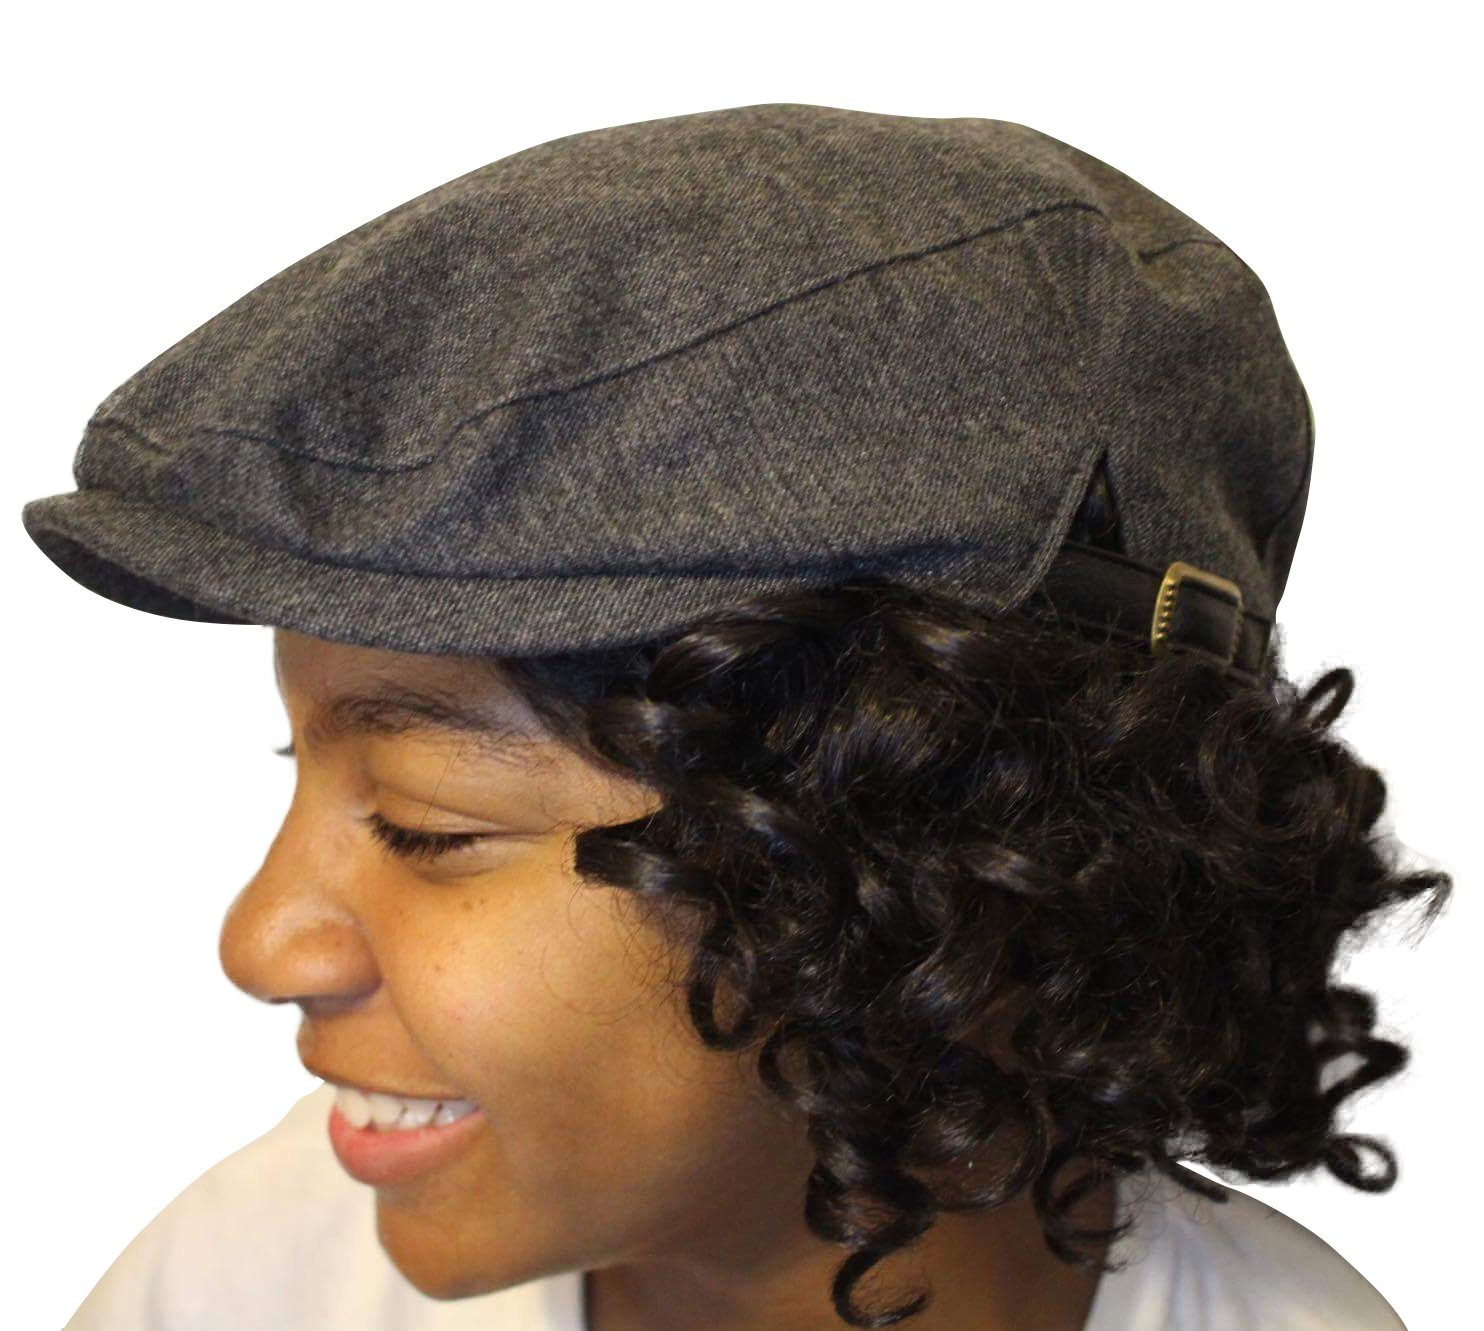 Always Eleven Satin Lined Newsboy Hat with Adjustable Straps (S/M, 57 cm)(Grey) by Always Eleven